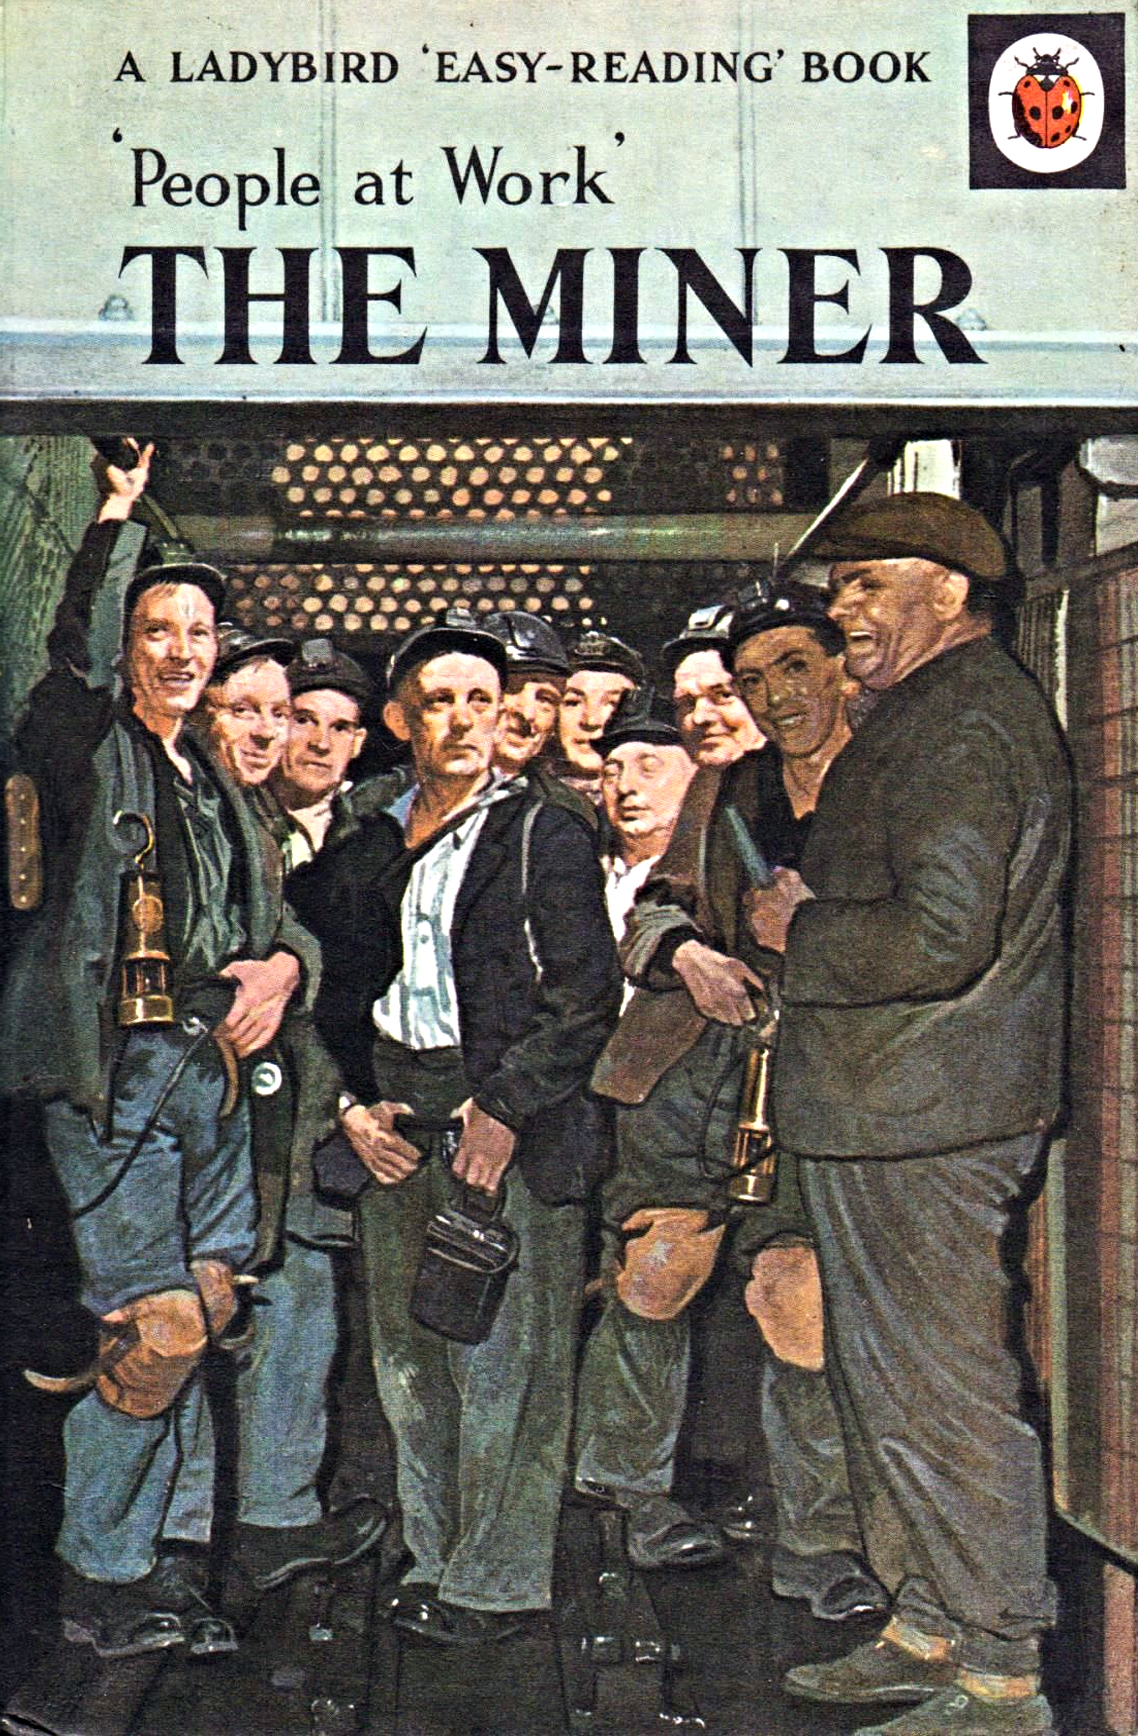 the-miner-vintage-ladybird-book-people-at-work-series-606b-matte-hardback-1967 AHM